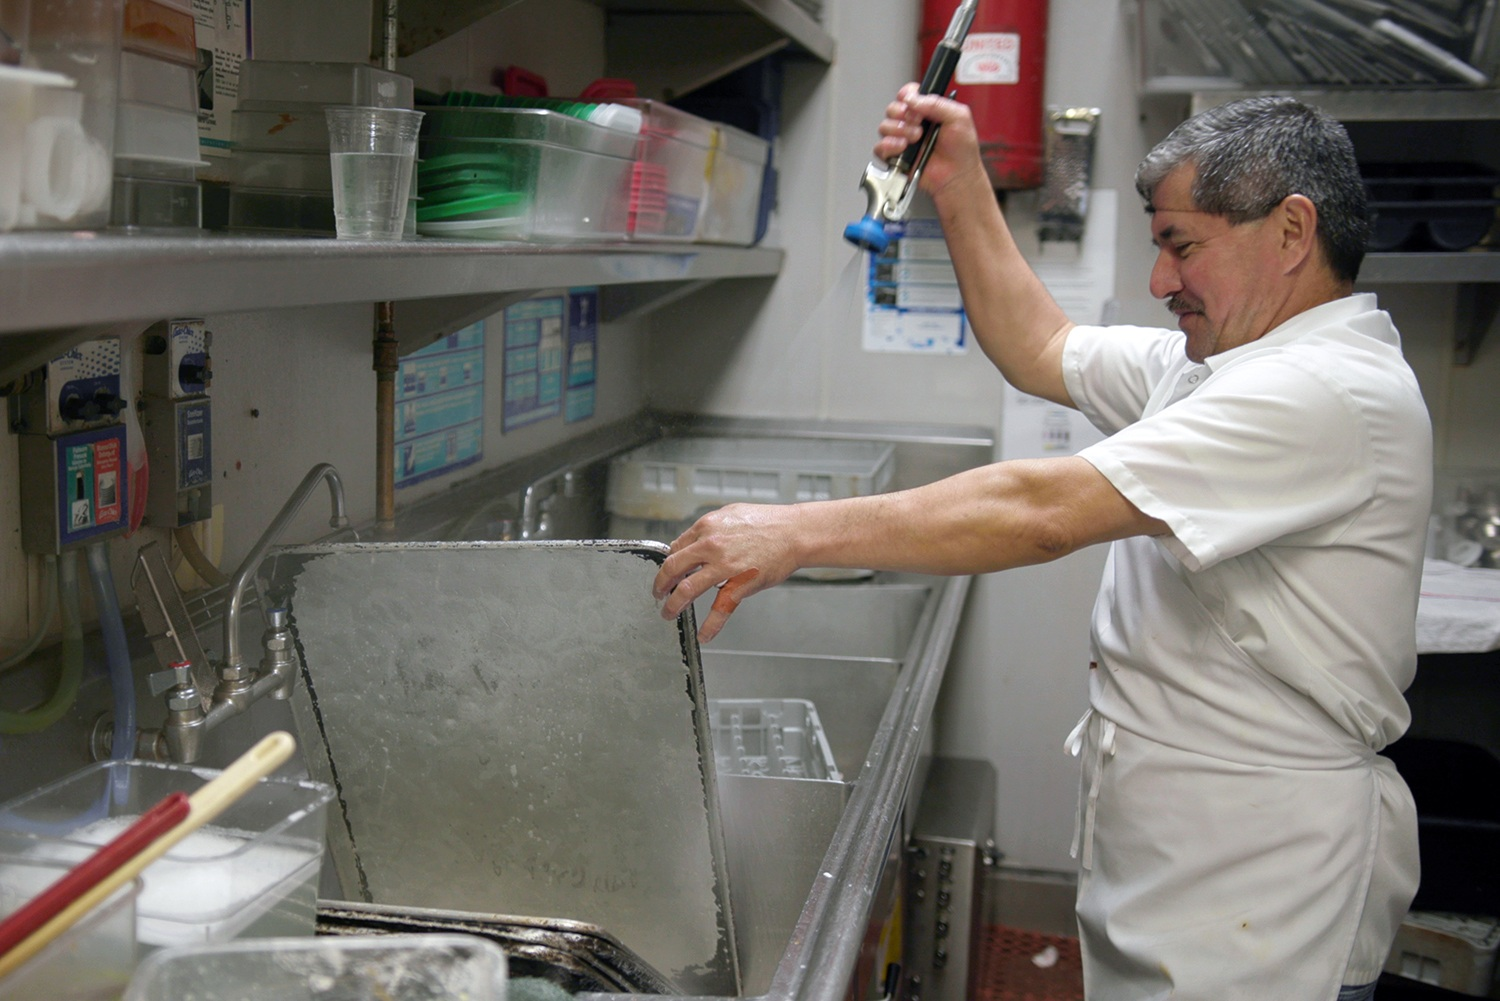 Chef cleans pan (March 2020)